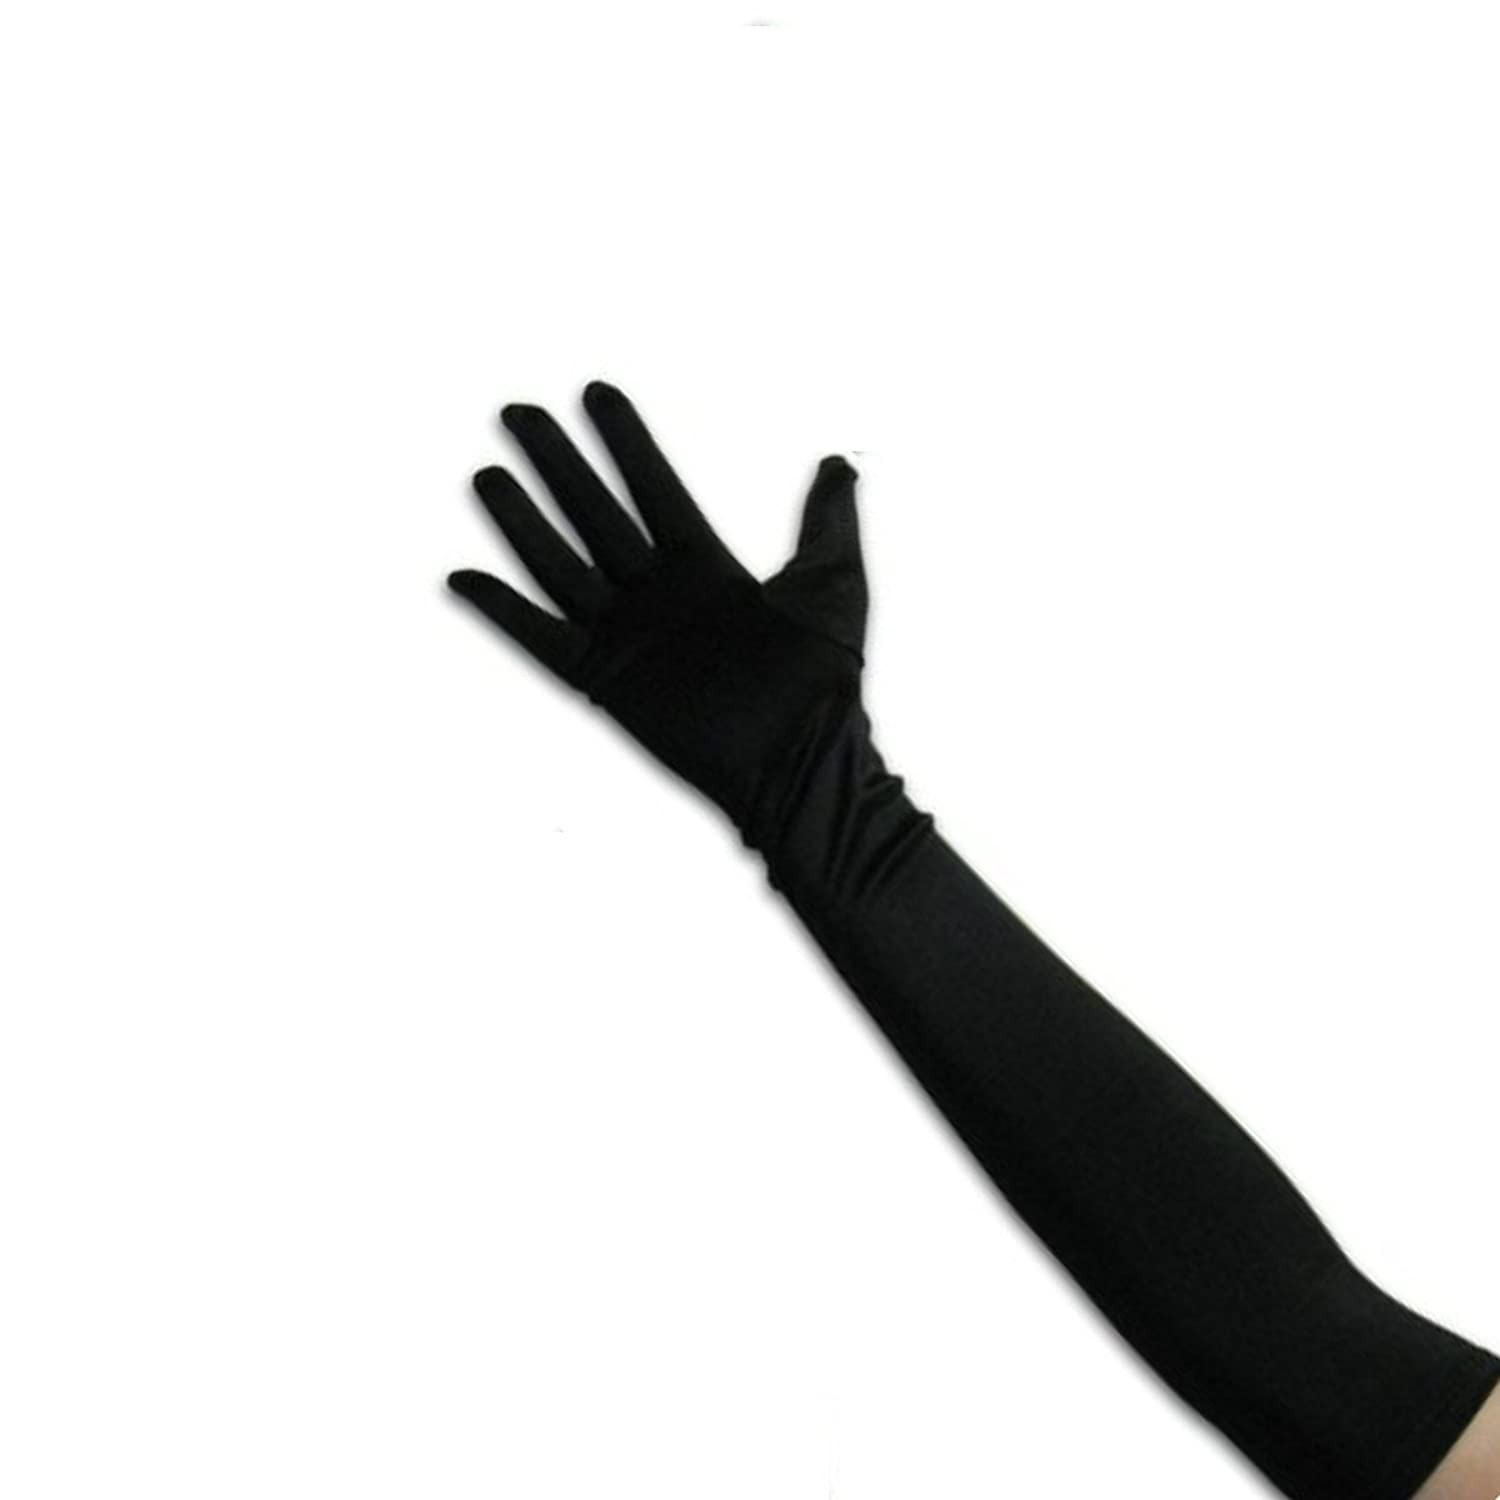 Steampunk Gloves Tapp Collections™ Classic Adult Size Long Opera/Elbow/Wrist Length Satin Gloves $10.99 AT vintagedancer.com